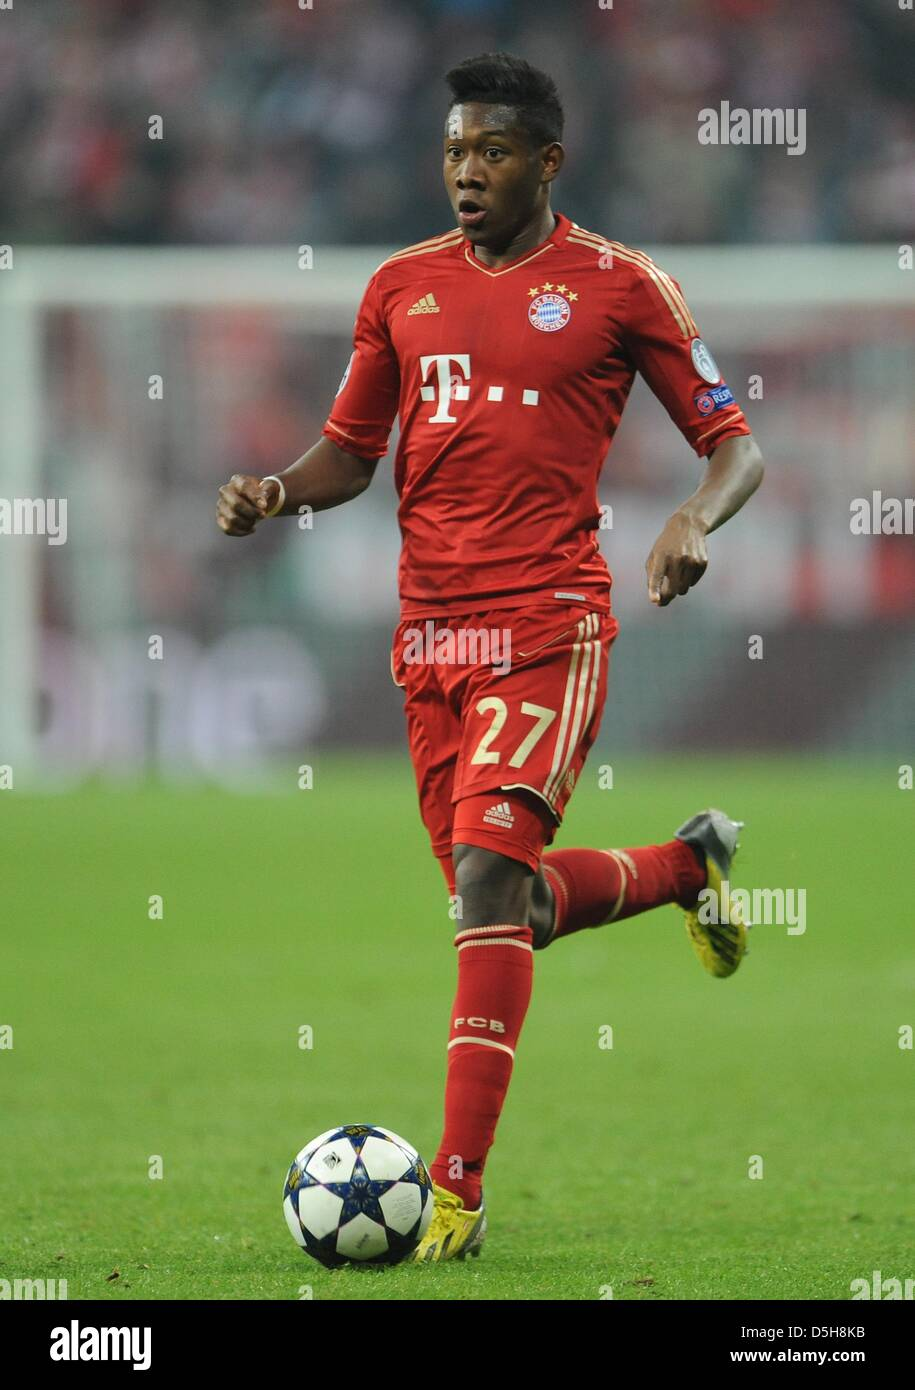 Munich s David Alaba runs with the ball during the UEFA Champions